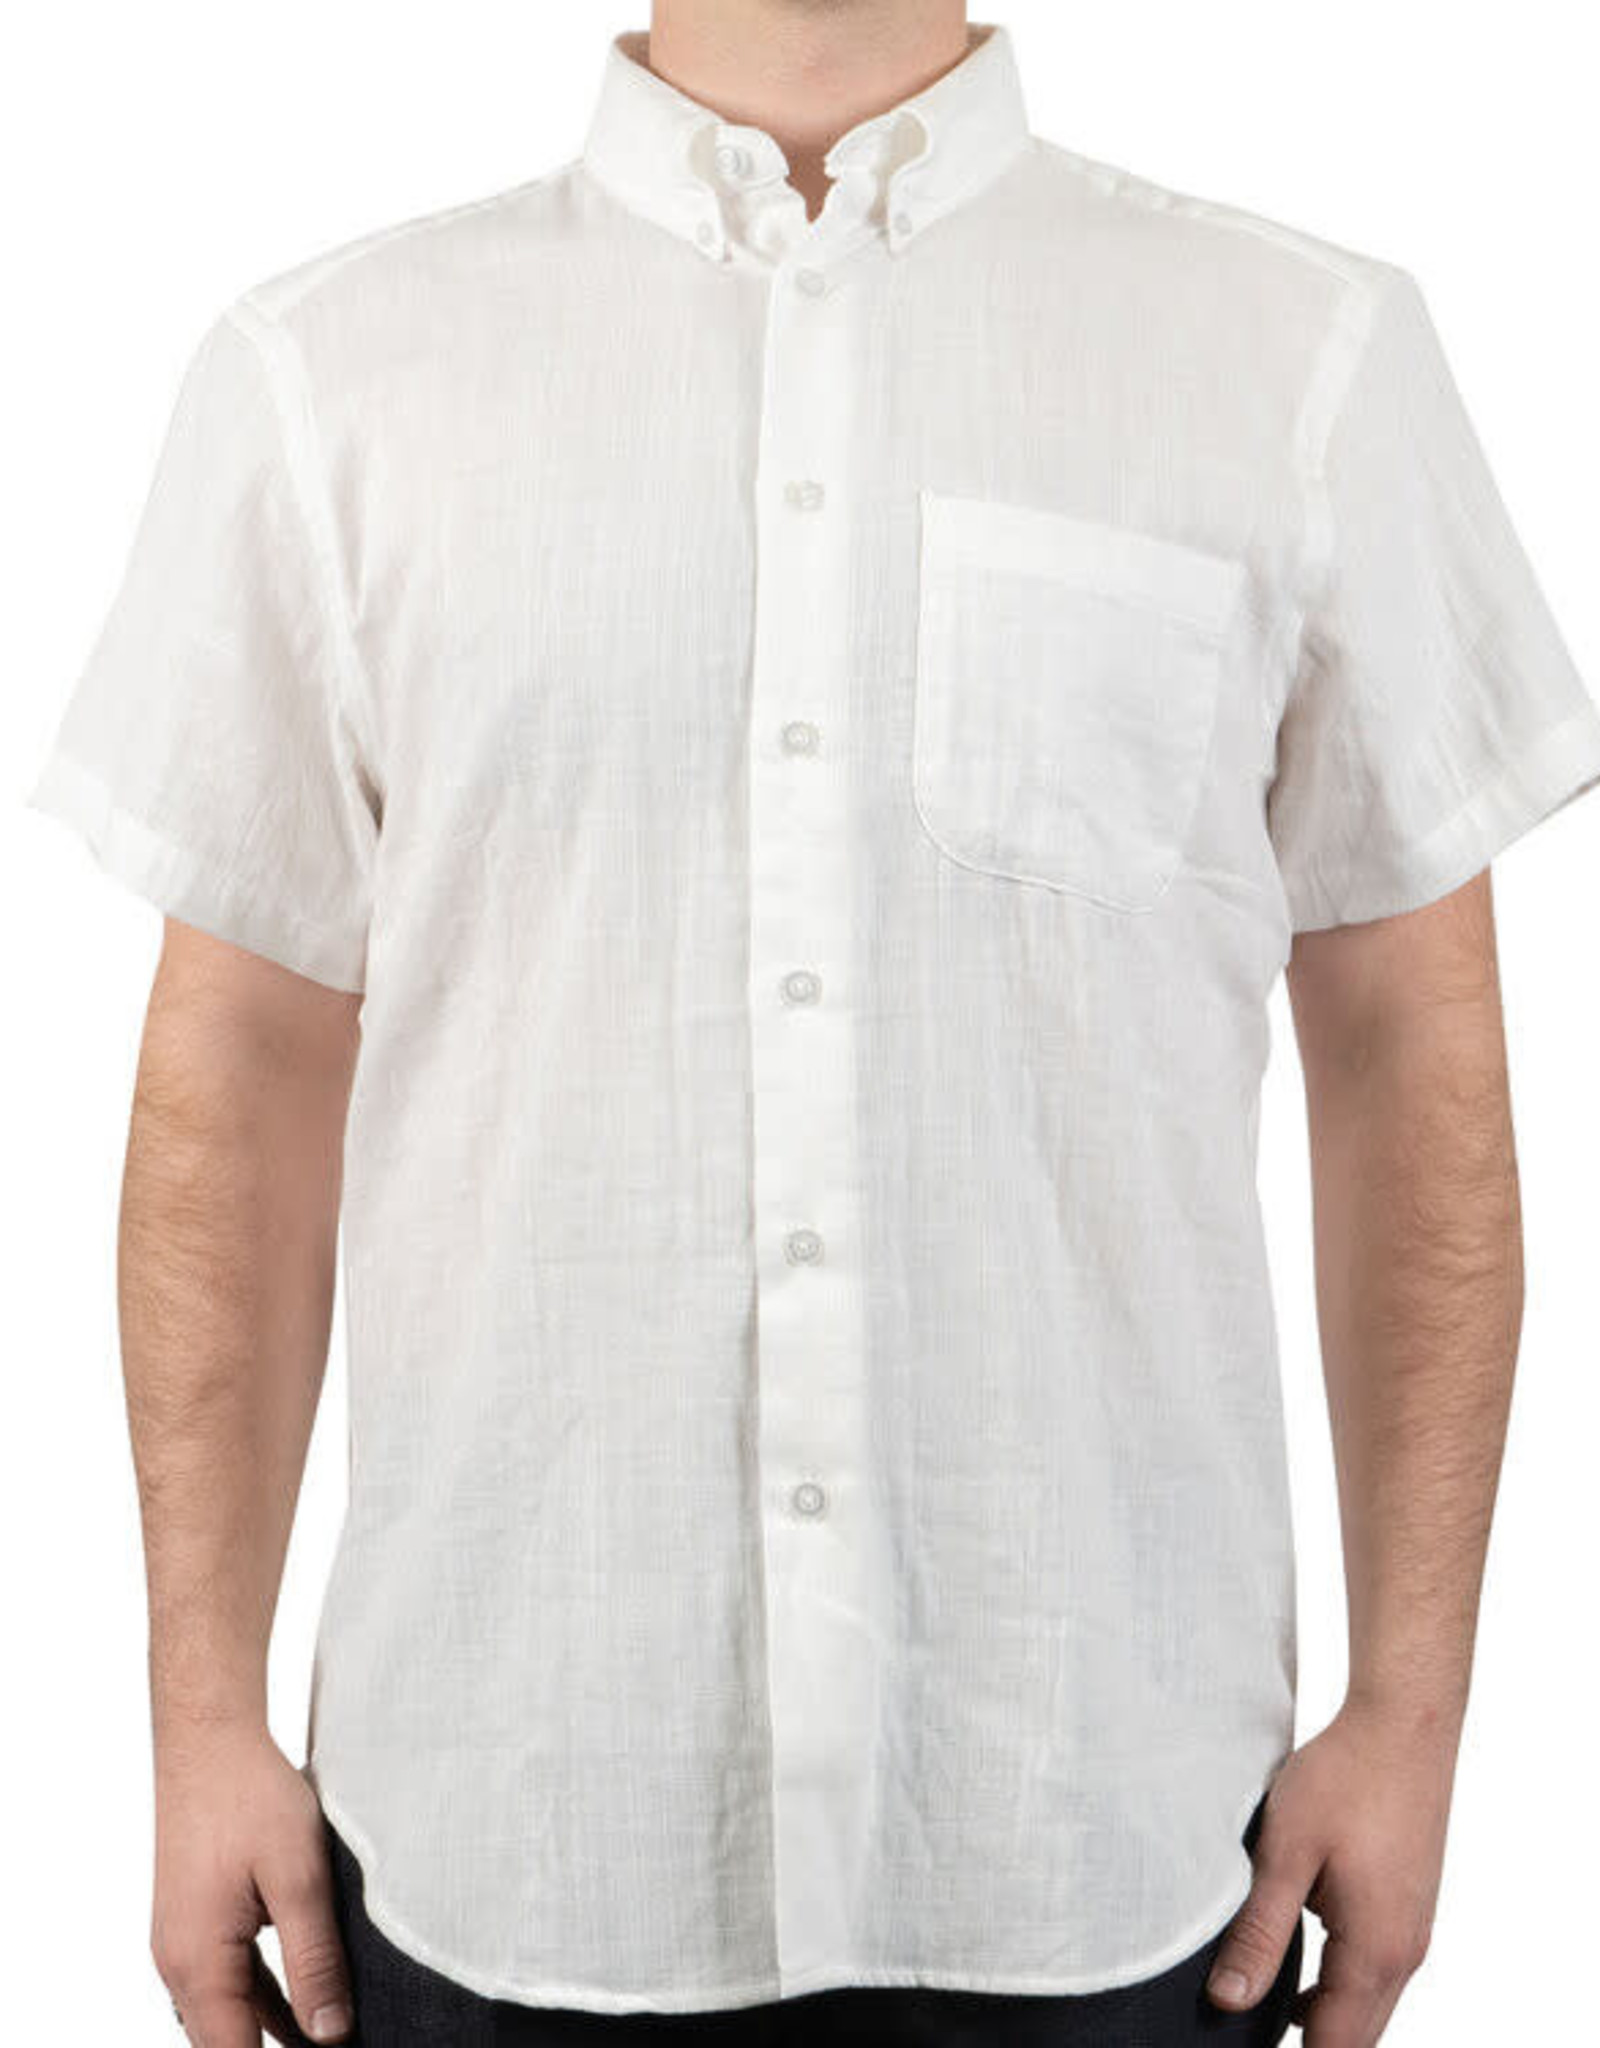 Naked and Famous Easy Shirt PE21 Naked & Famous Double Weave Gauze White